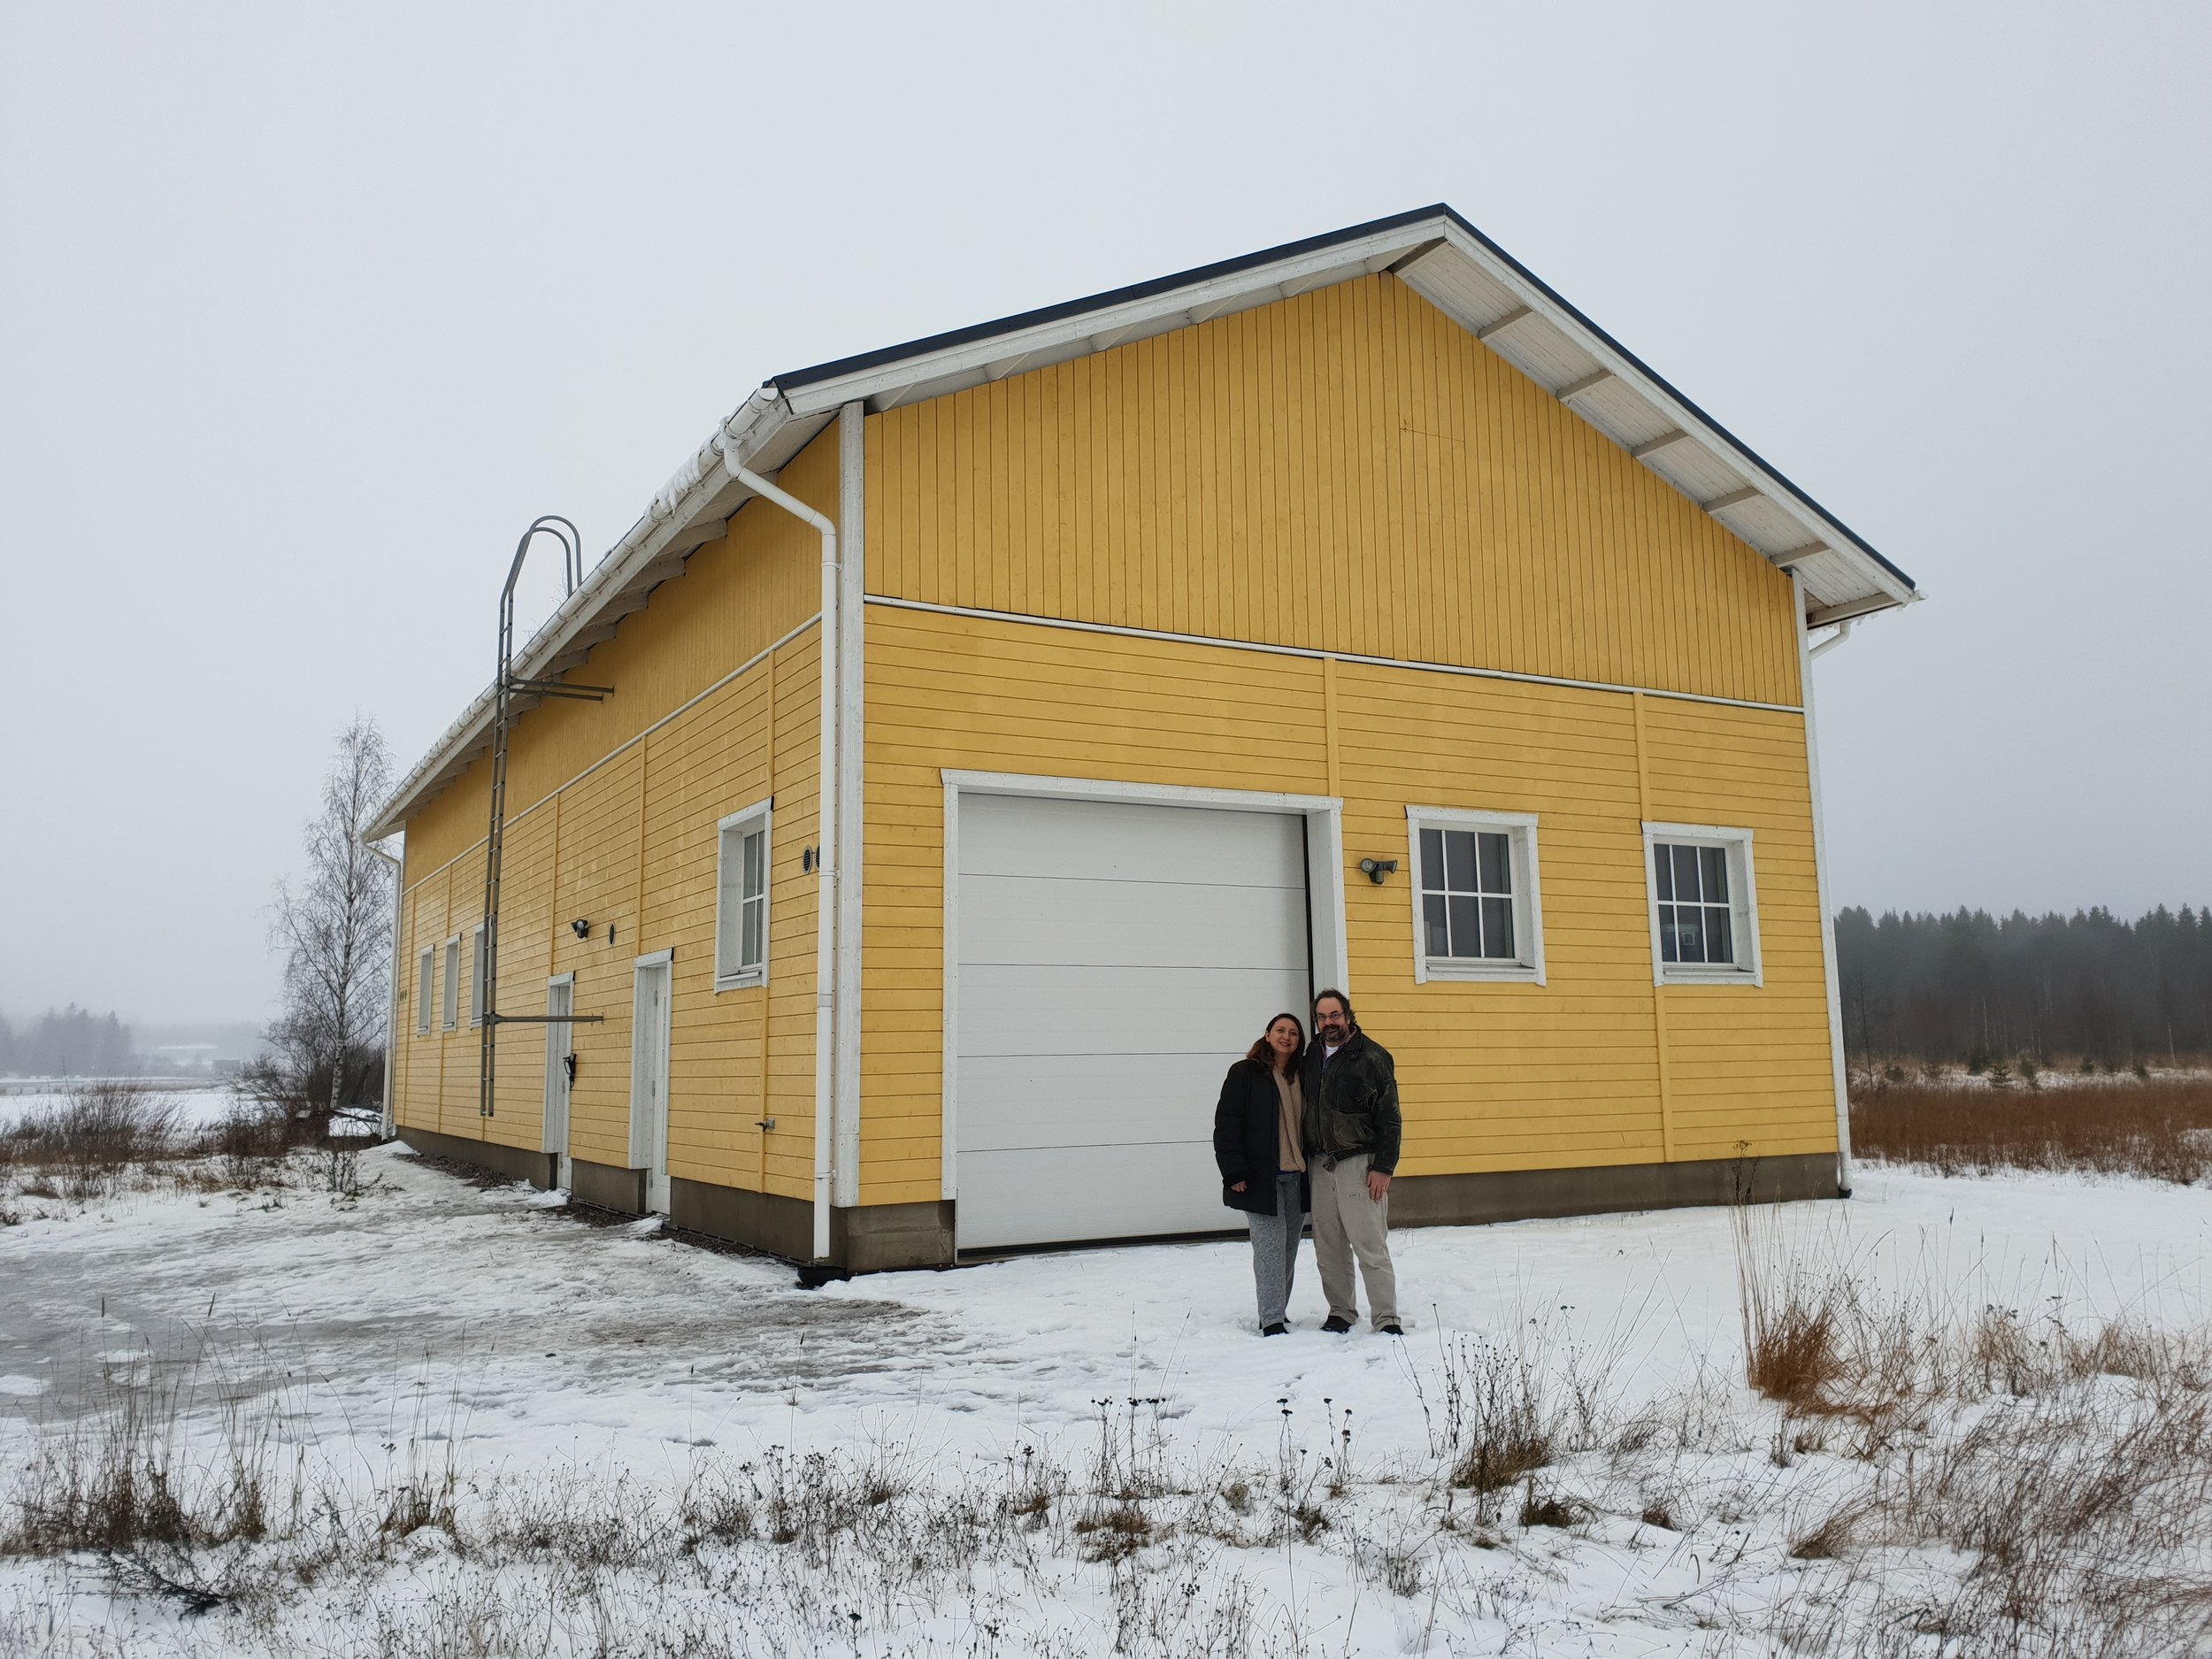 The new home for Ainoa Winery in Hollola, Finland.